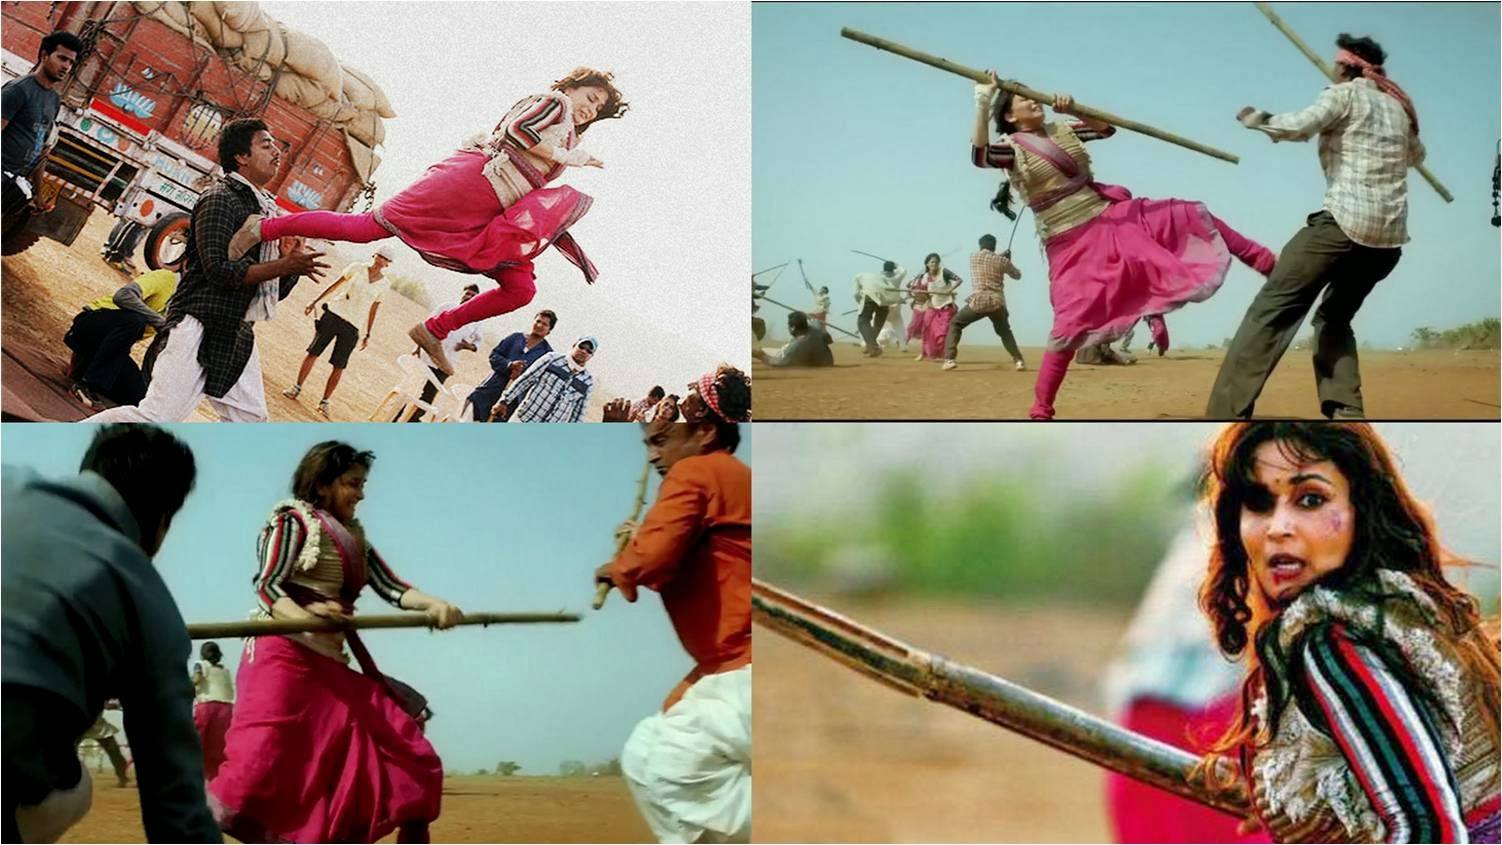 Madhuri Dixit fighting with goons in an action scene of Gulaab Gang movie still